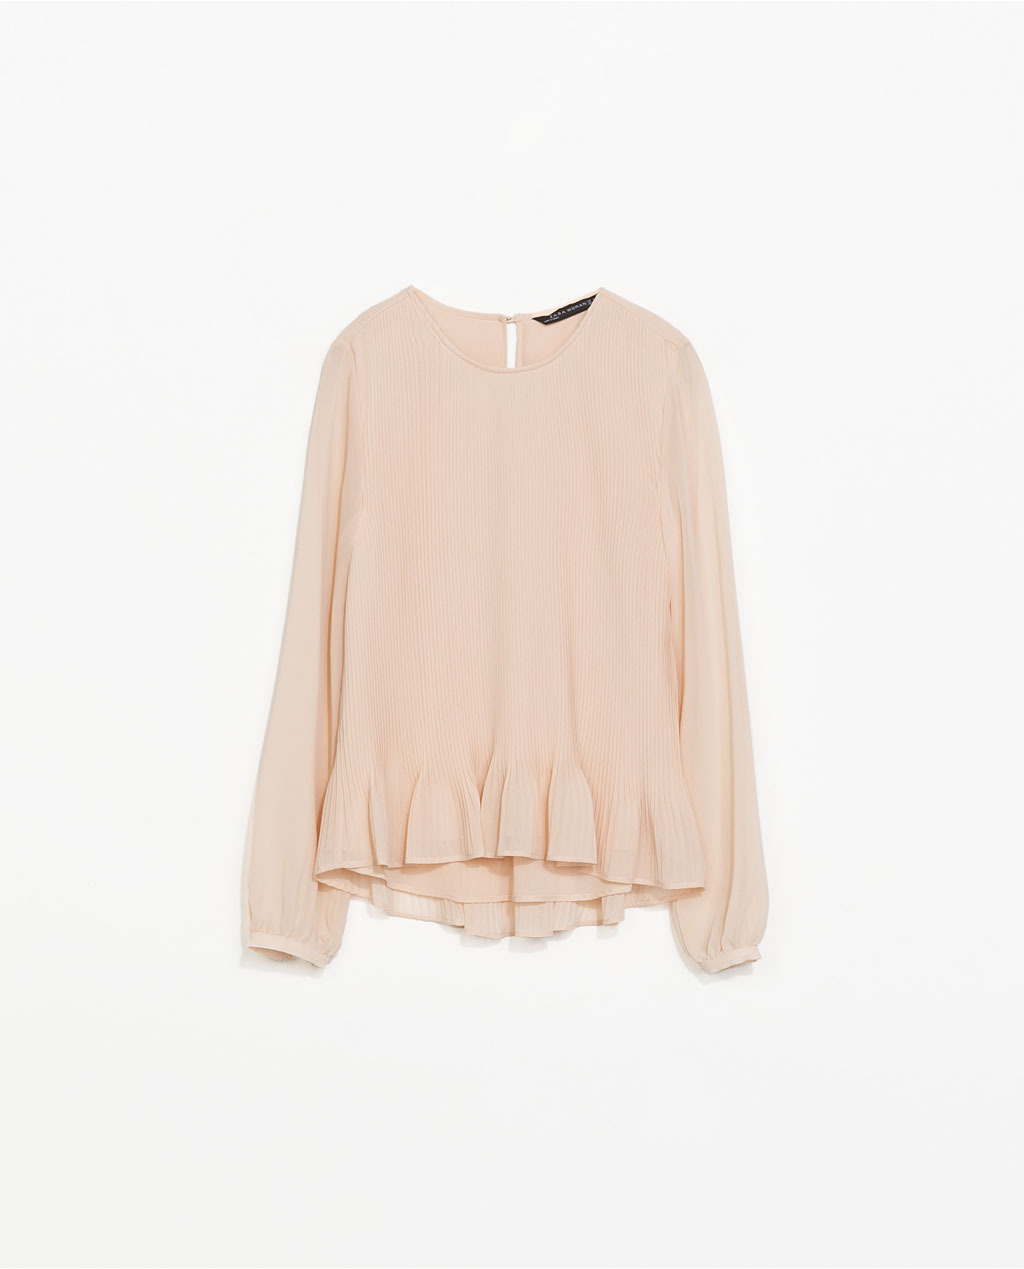 Fine Pleated Blouse - neckline: round neck; pattern: plain; sleeve style: balloon; style: blouse; predominant colour: blush; occasions: casual, evening, creative work; length: standard; fibres: polyester/polyamide - 100%; fit: loose; sleeve length: long sleeve; texture group: sheer fabrics/chiffon/organza etc.; bust detail: bulky details at bust; pattern type: fabric; season: s/s 2014; wardrobe: highlight